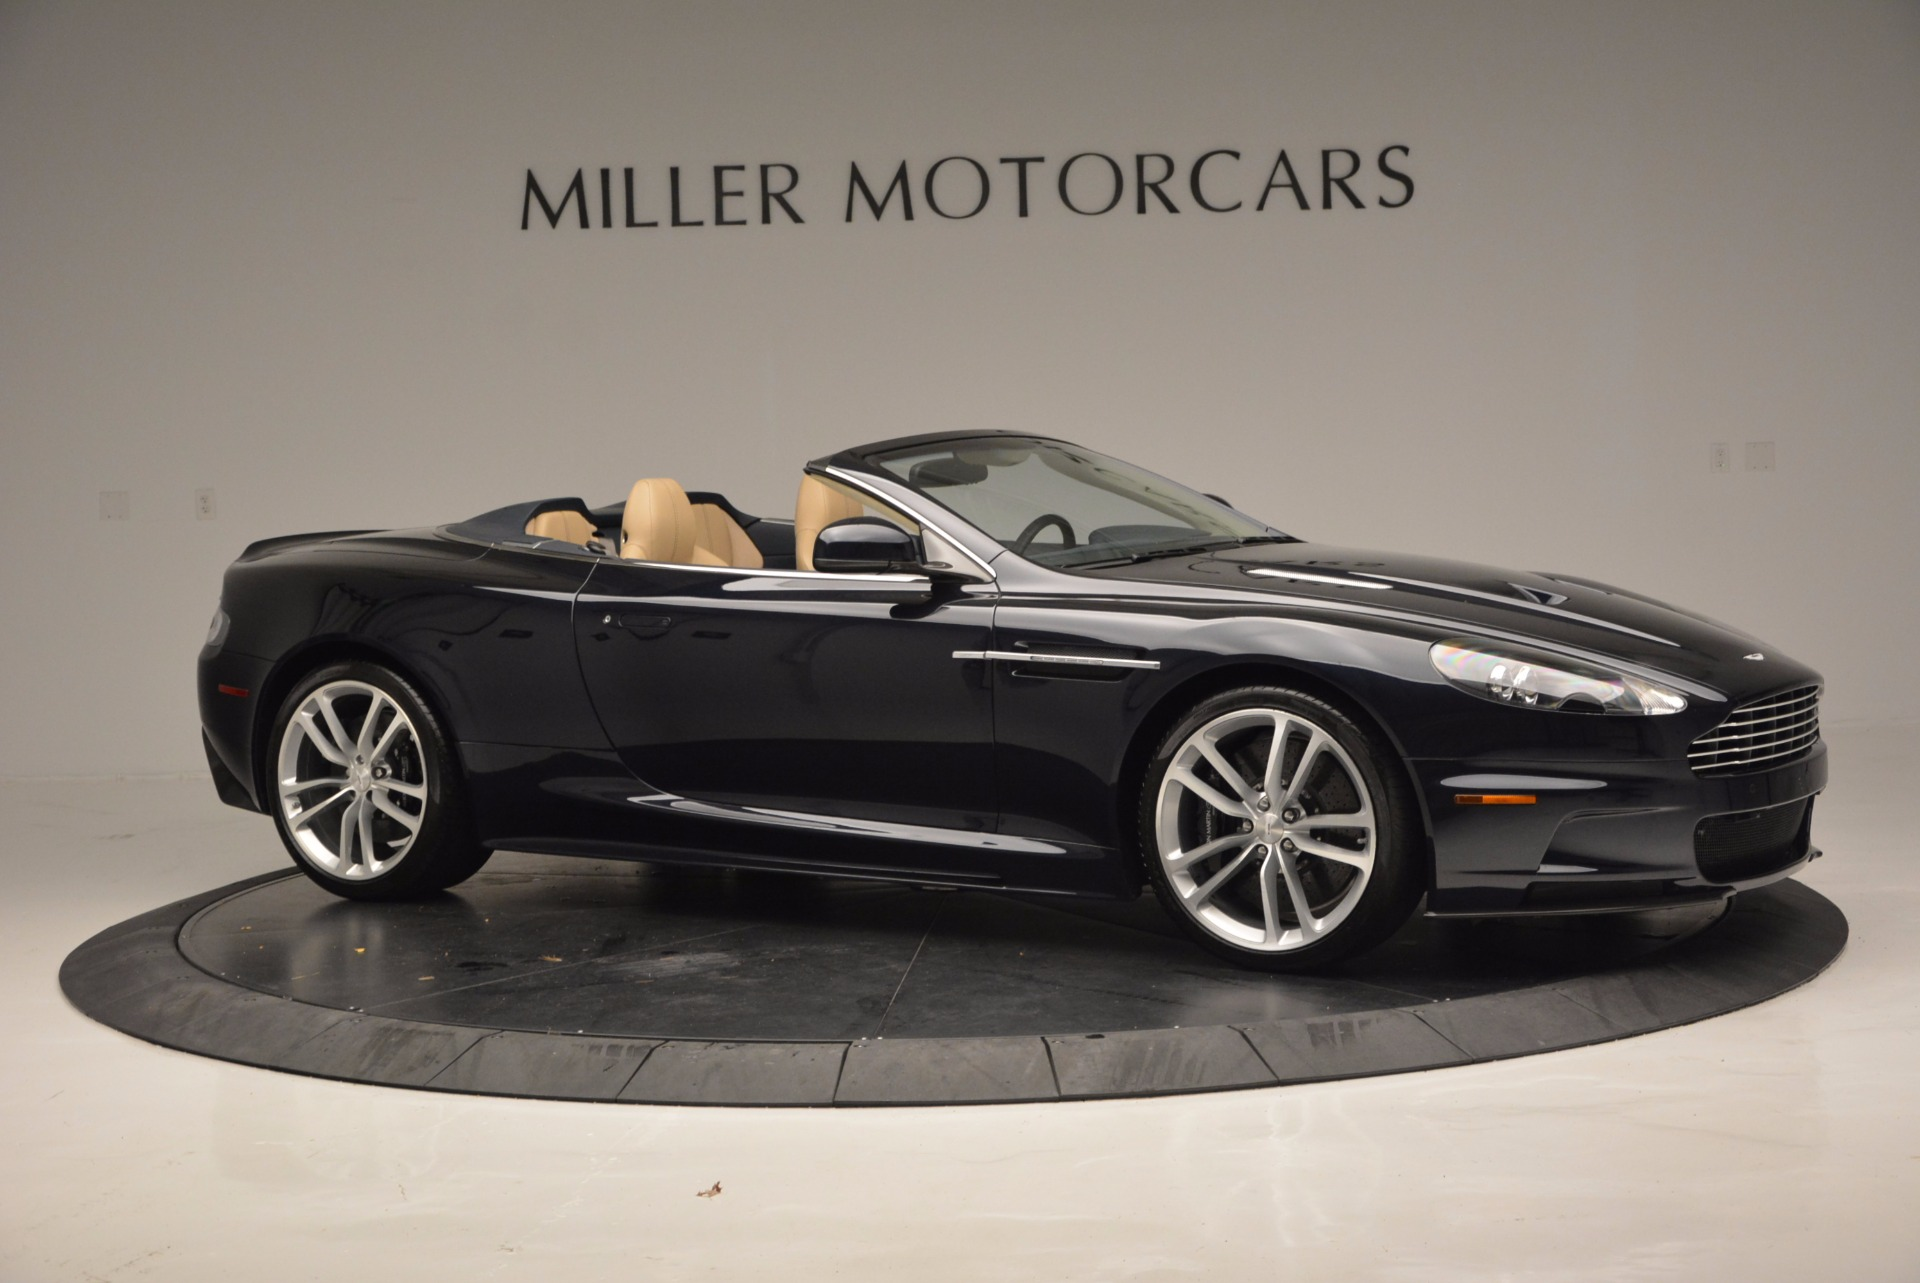 Used 2012 Aston Martin DBS Volante For Sale In Westport, CT 644_p10